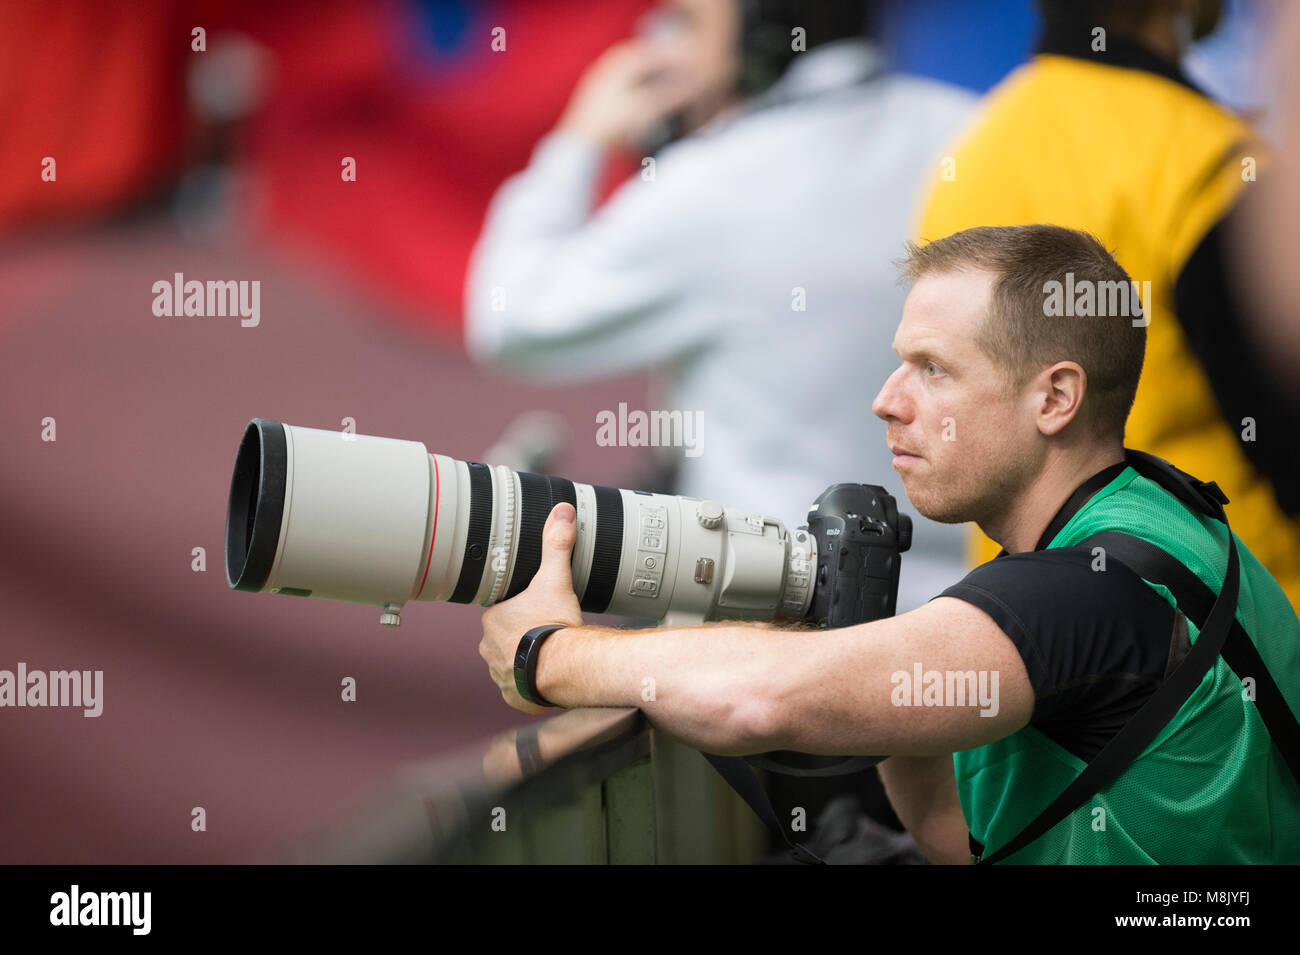 Professional sport photographer at an event. - Stock Image